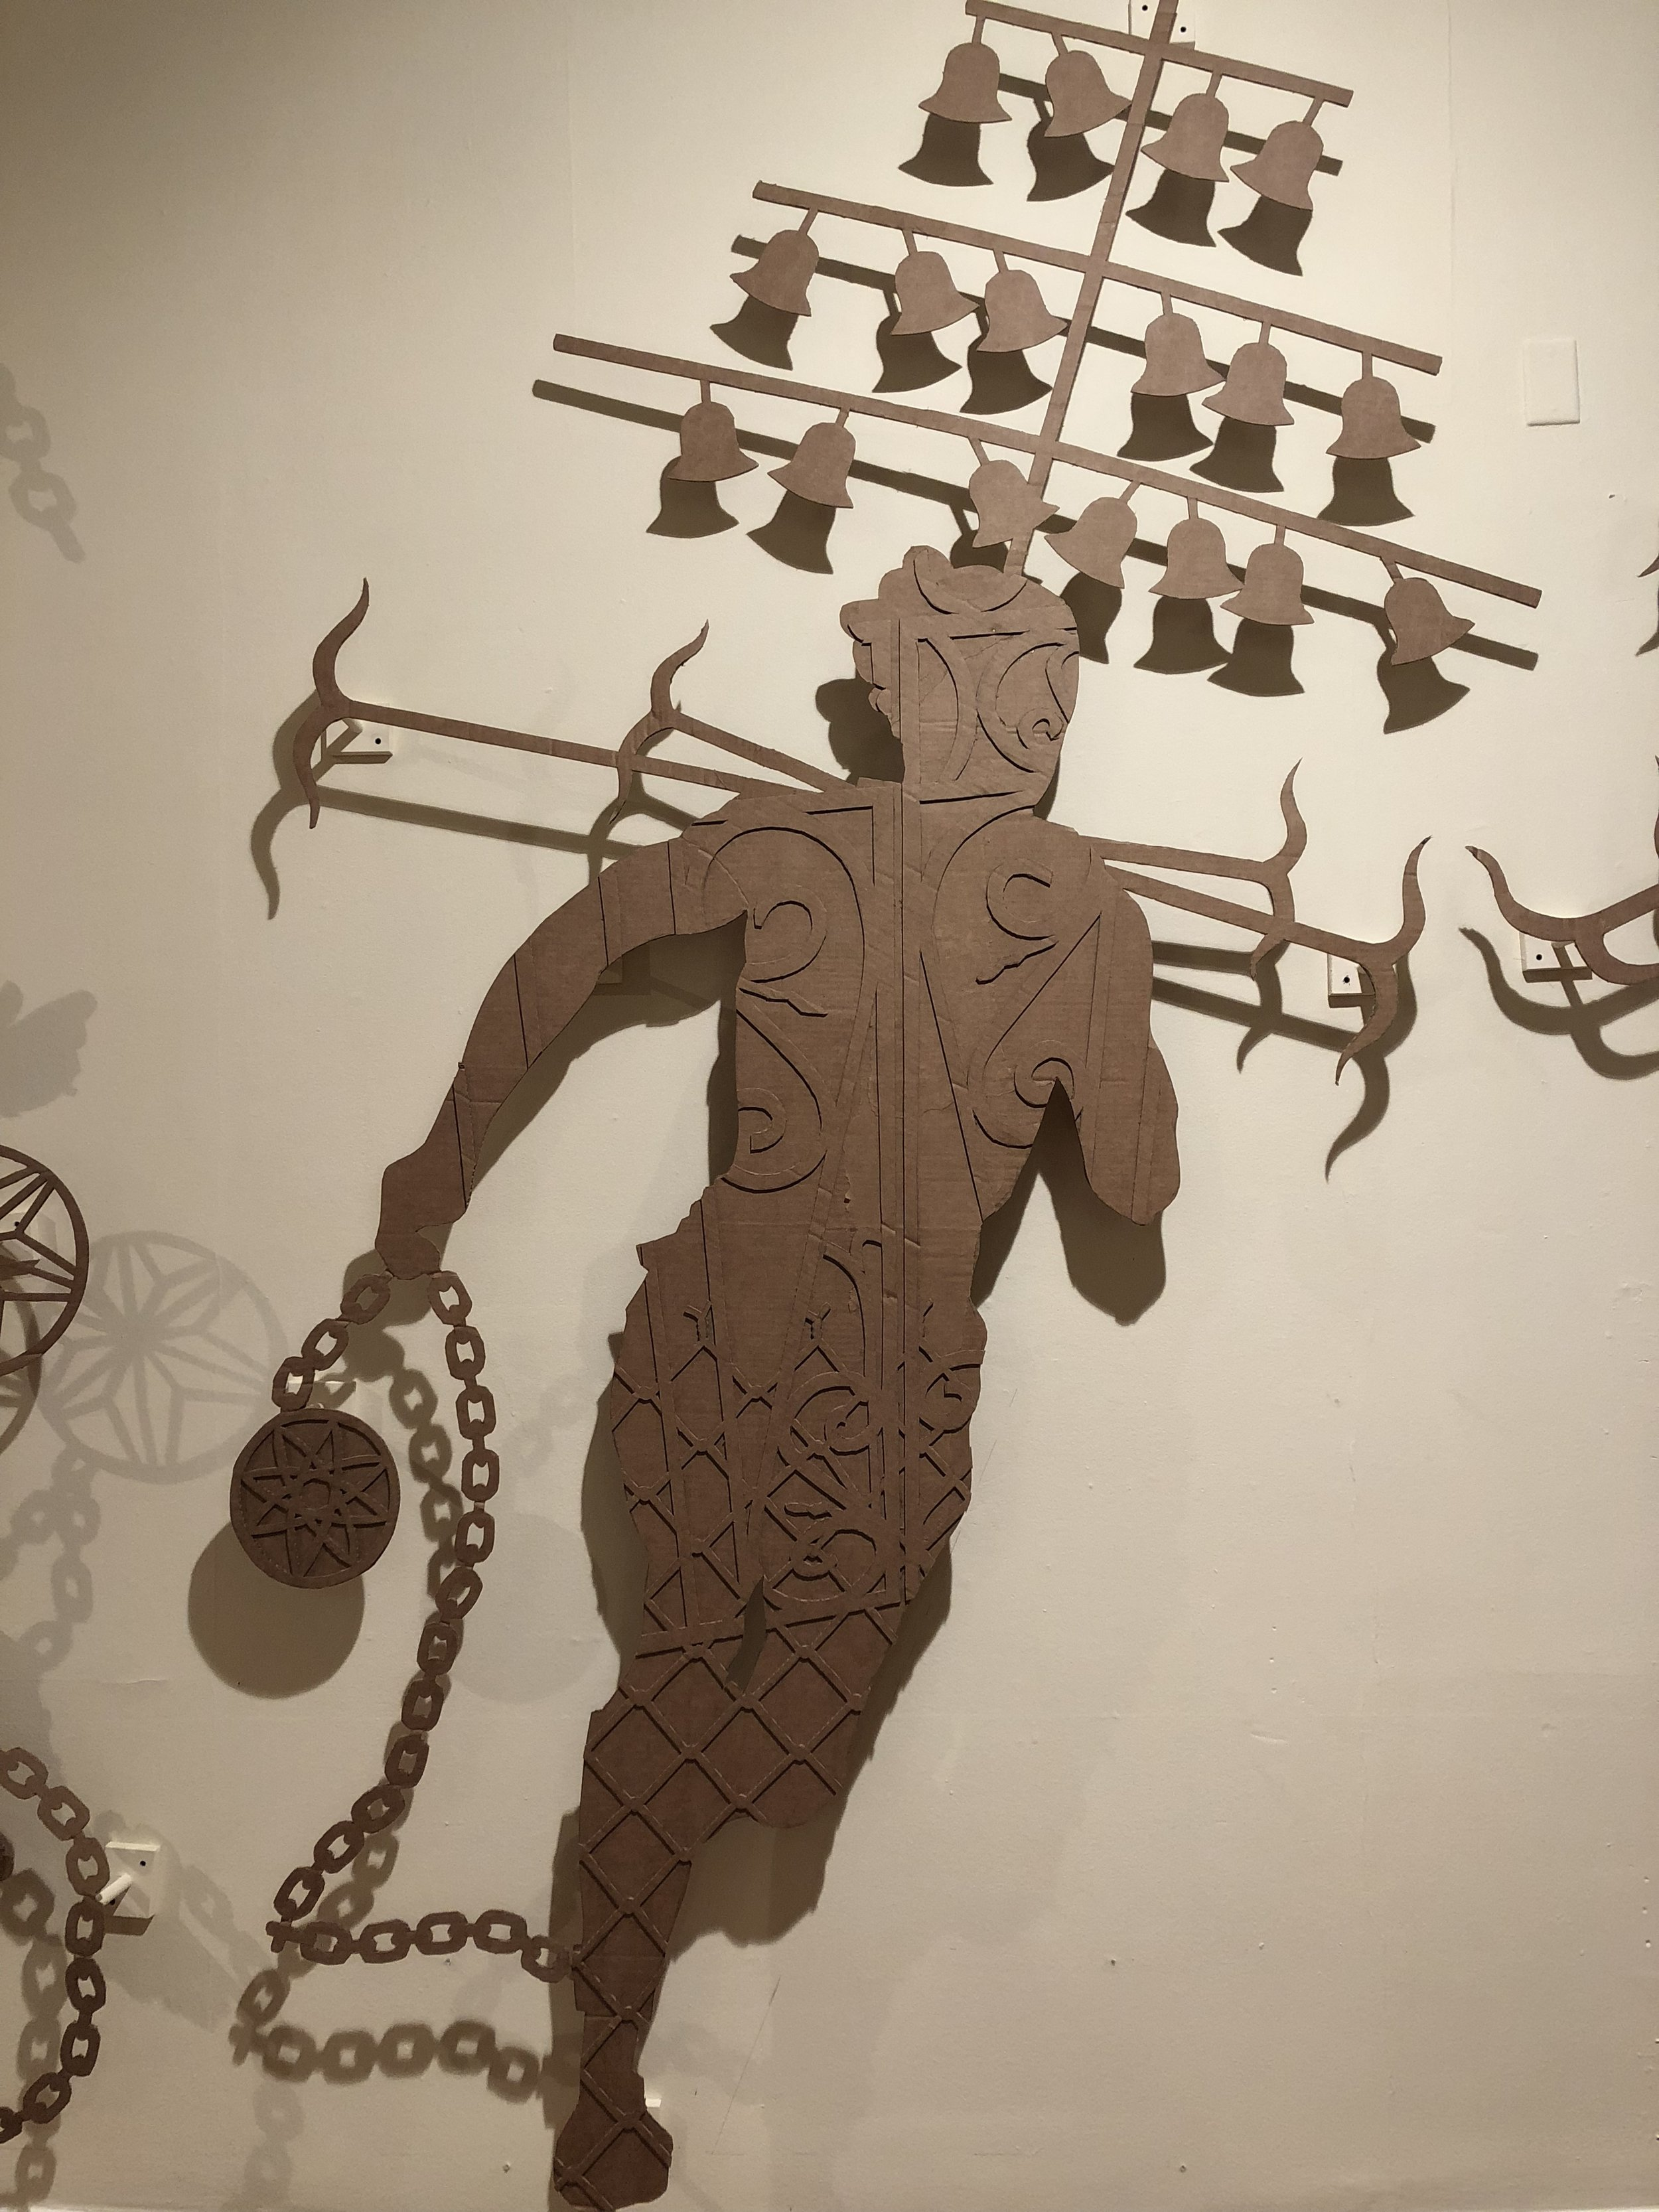 """Detail of John Beadle's """"Cuffed: held in check"""" (2018), a series of corrugated cardboard cutouts investigating representation and stereotyping around blackness as it relates to the legacies of the Atlantic slave trade."""